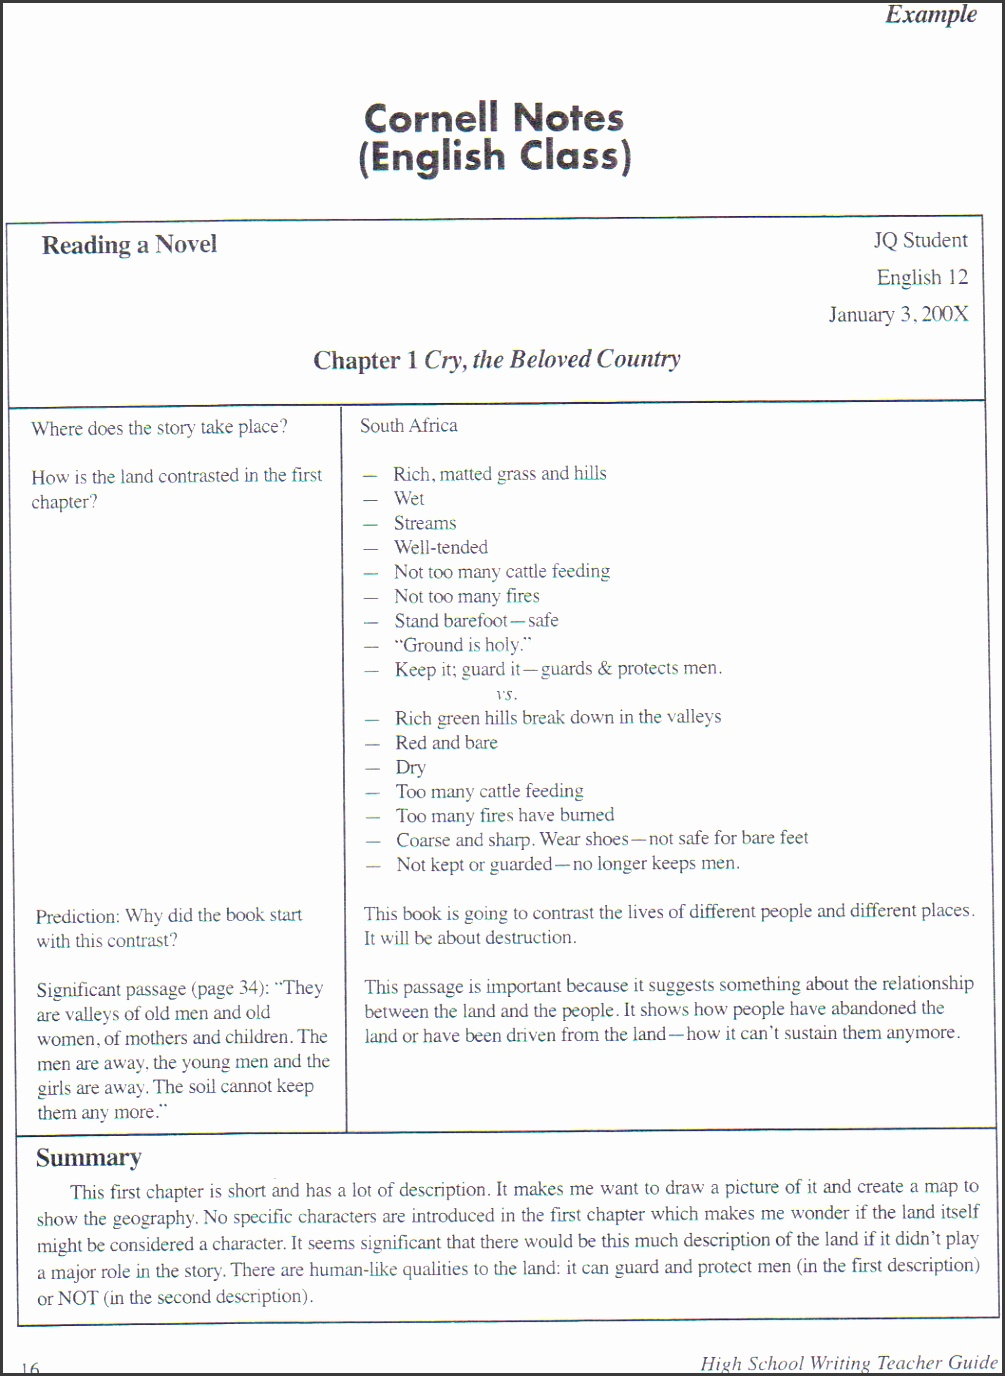 Cornell Note Example English 3